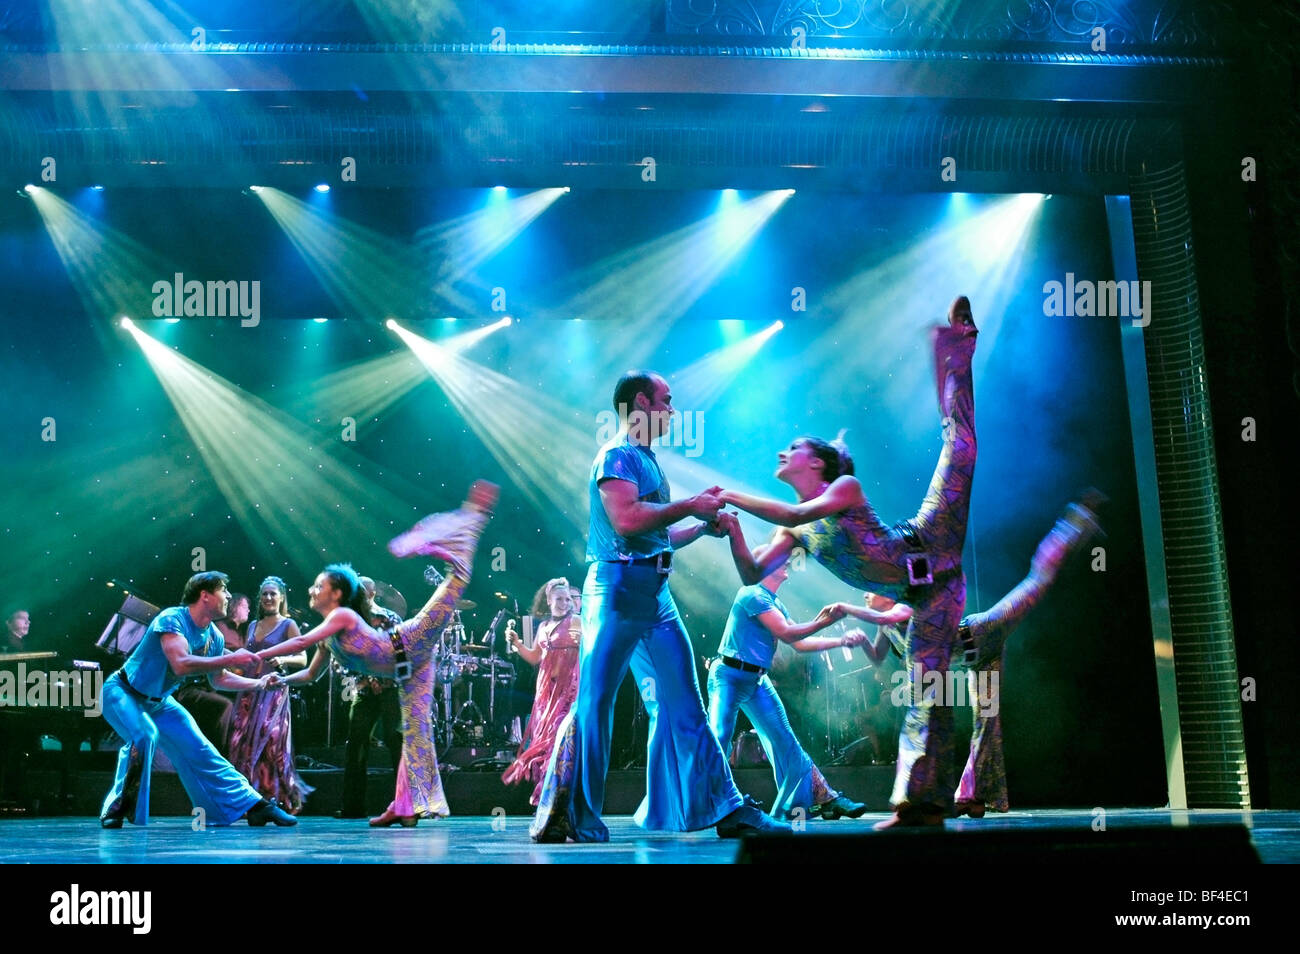 dancers performing on stage - Stock Image